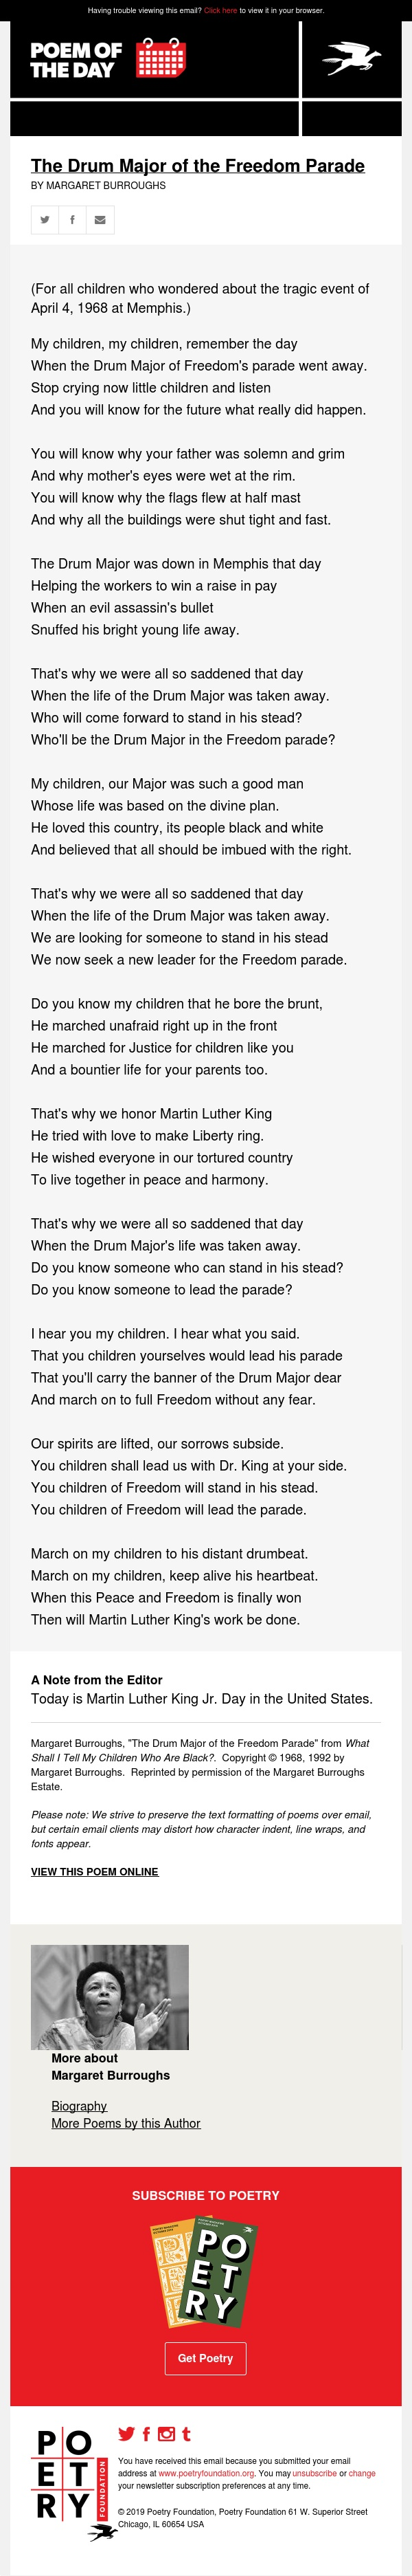 Poem of the Day: The Drum Major of the Freedom Parade